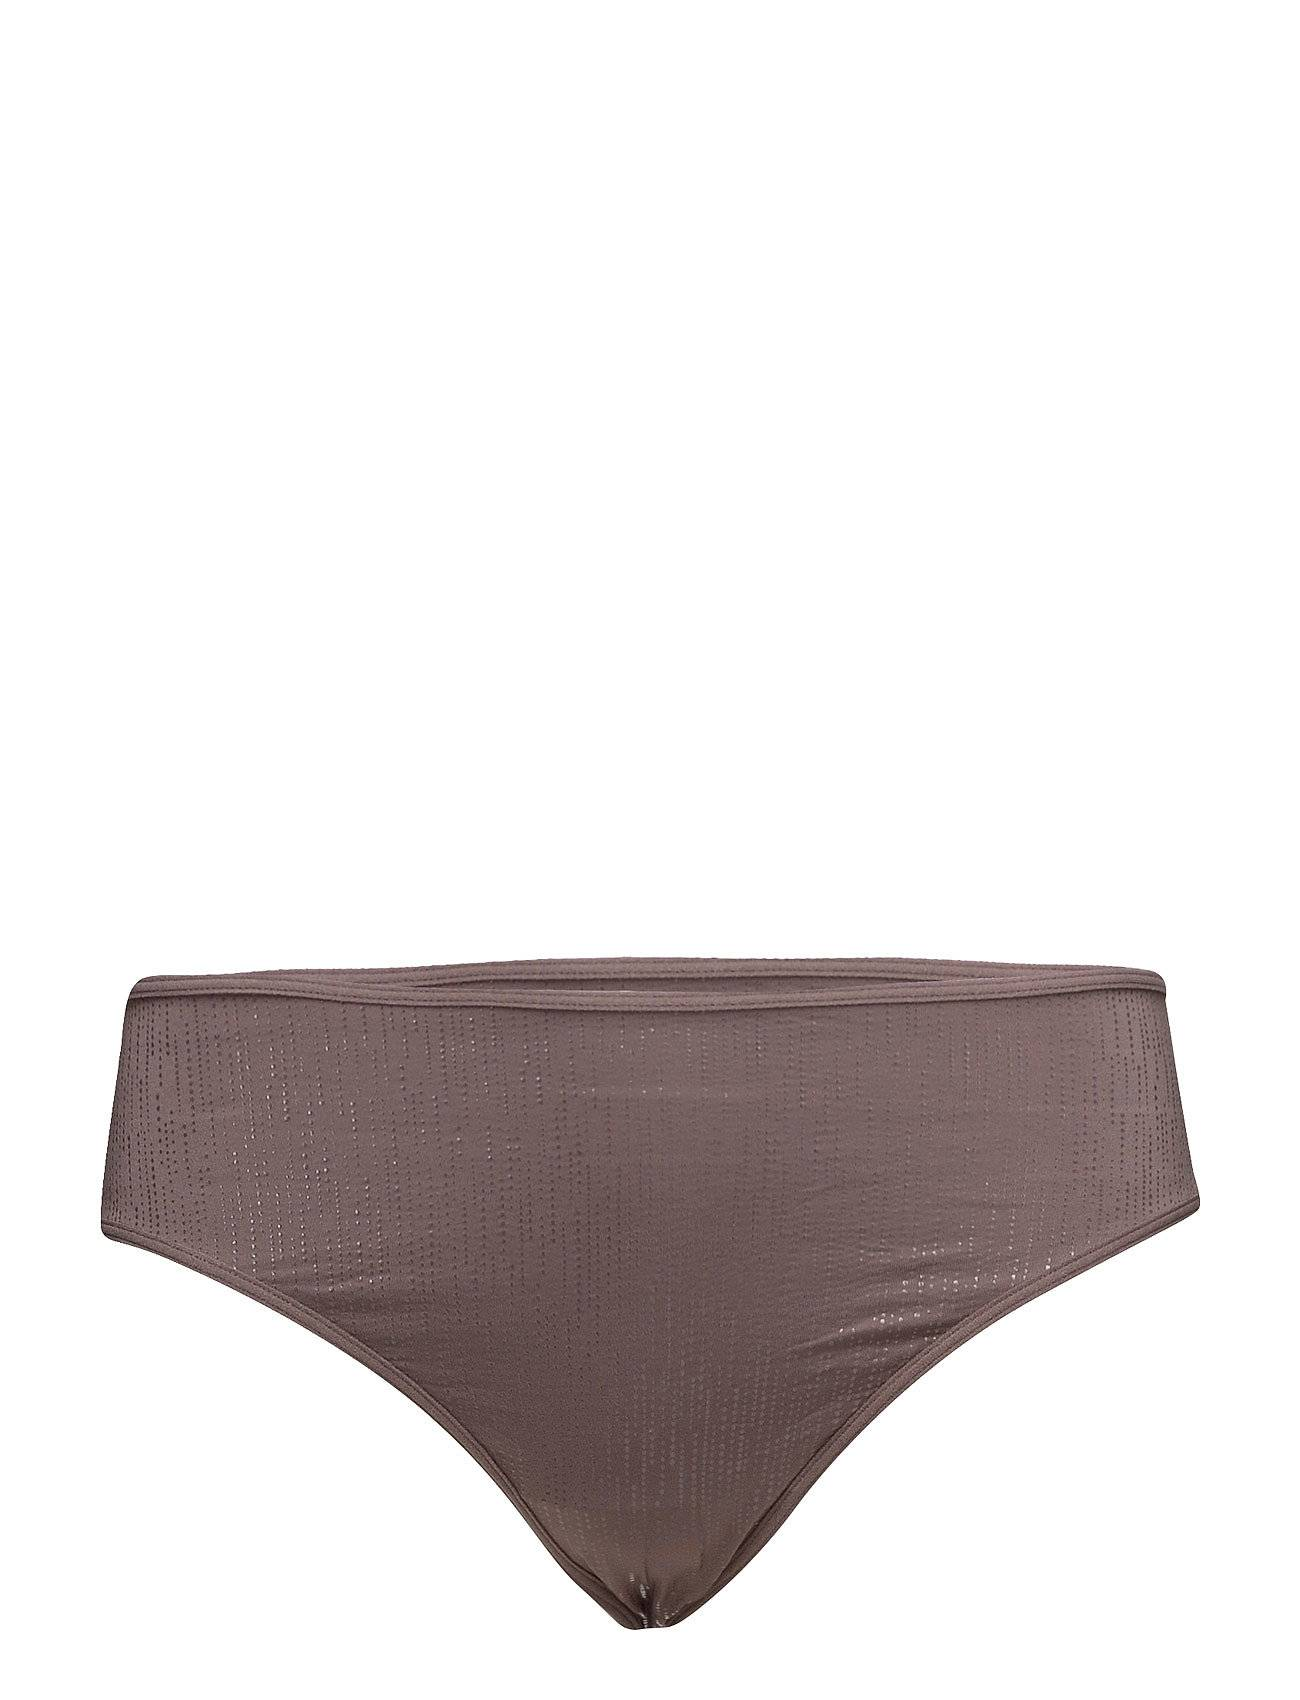 Marlies Dekkers Md D.De Paris Thong 7 Plum Truffle